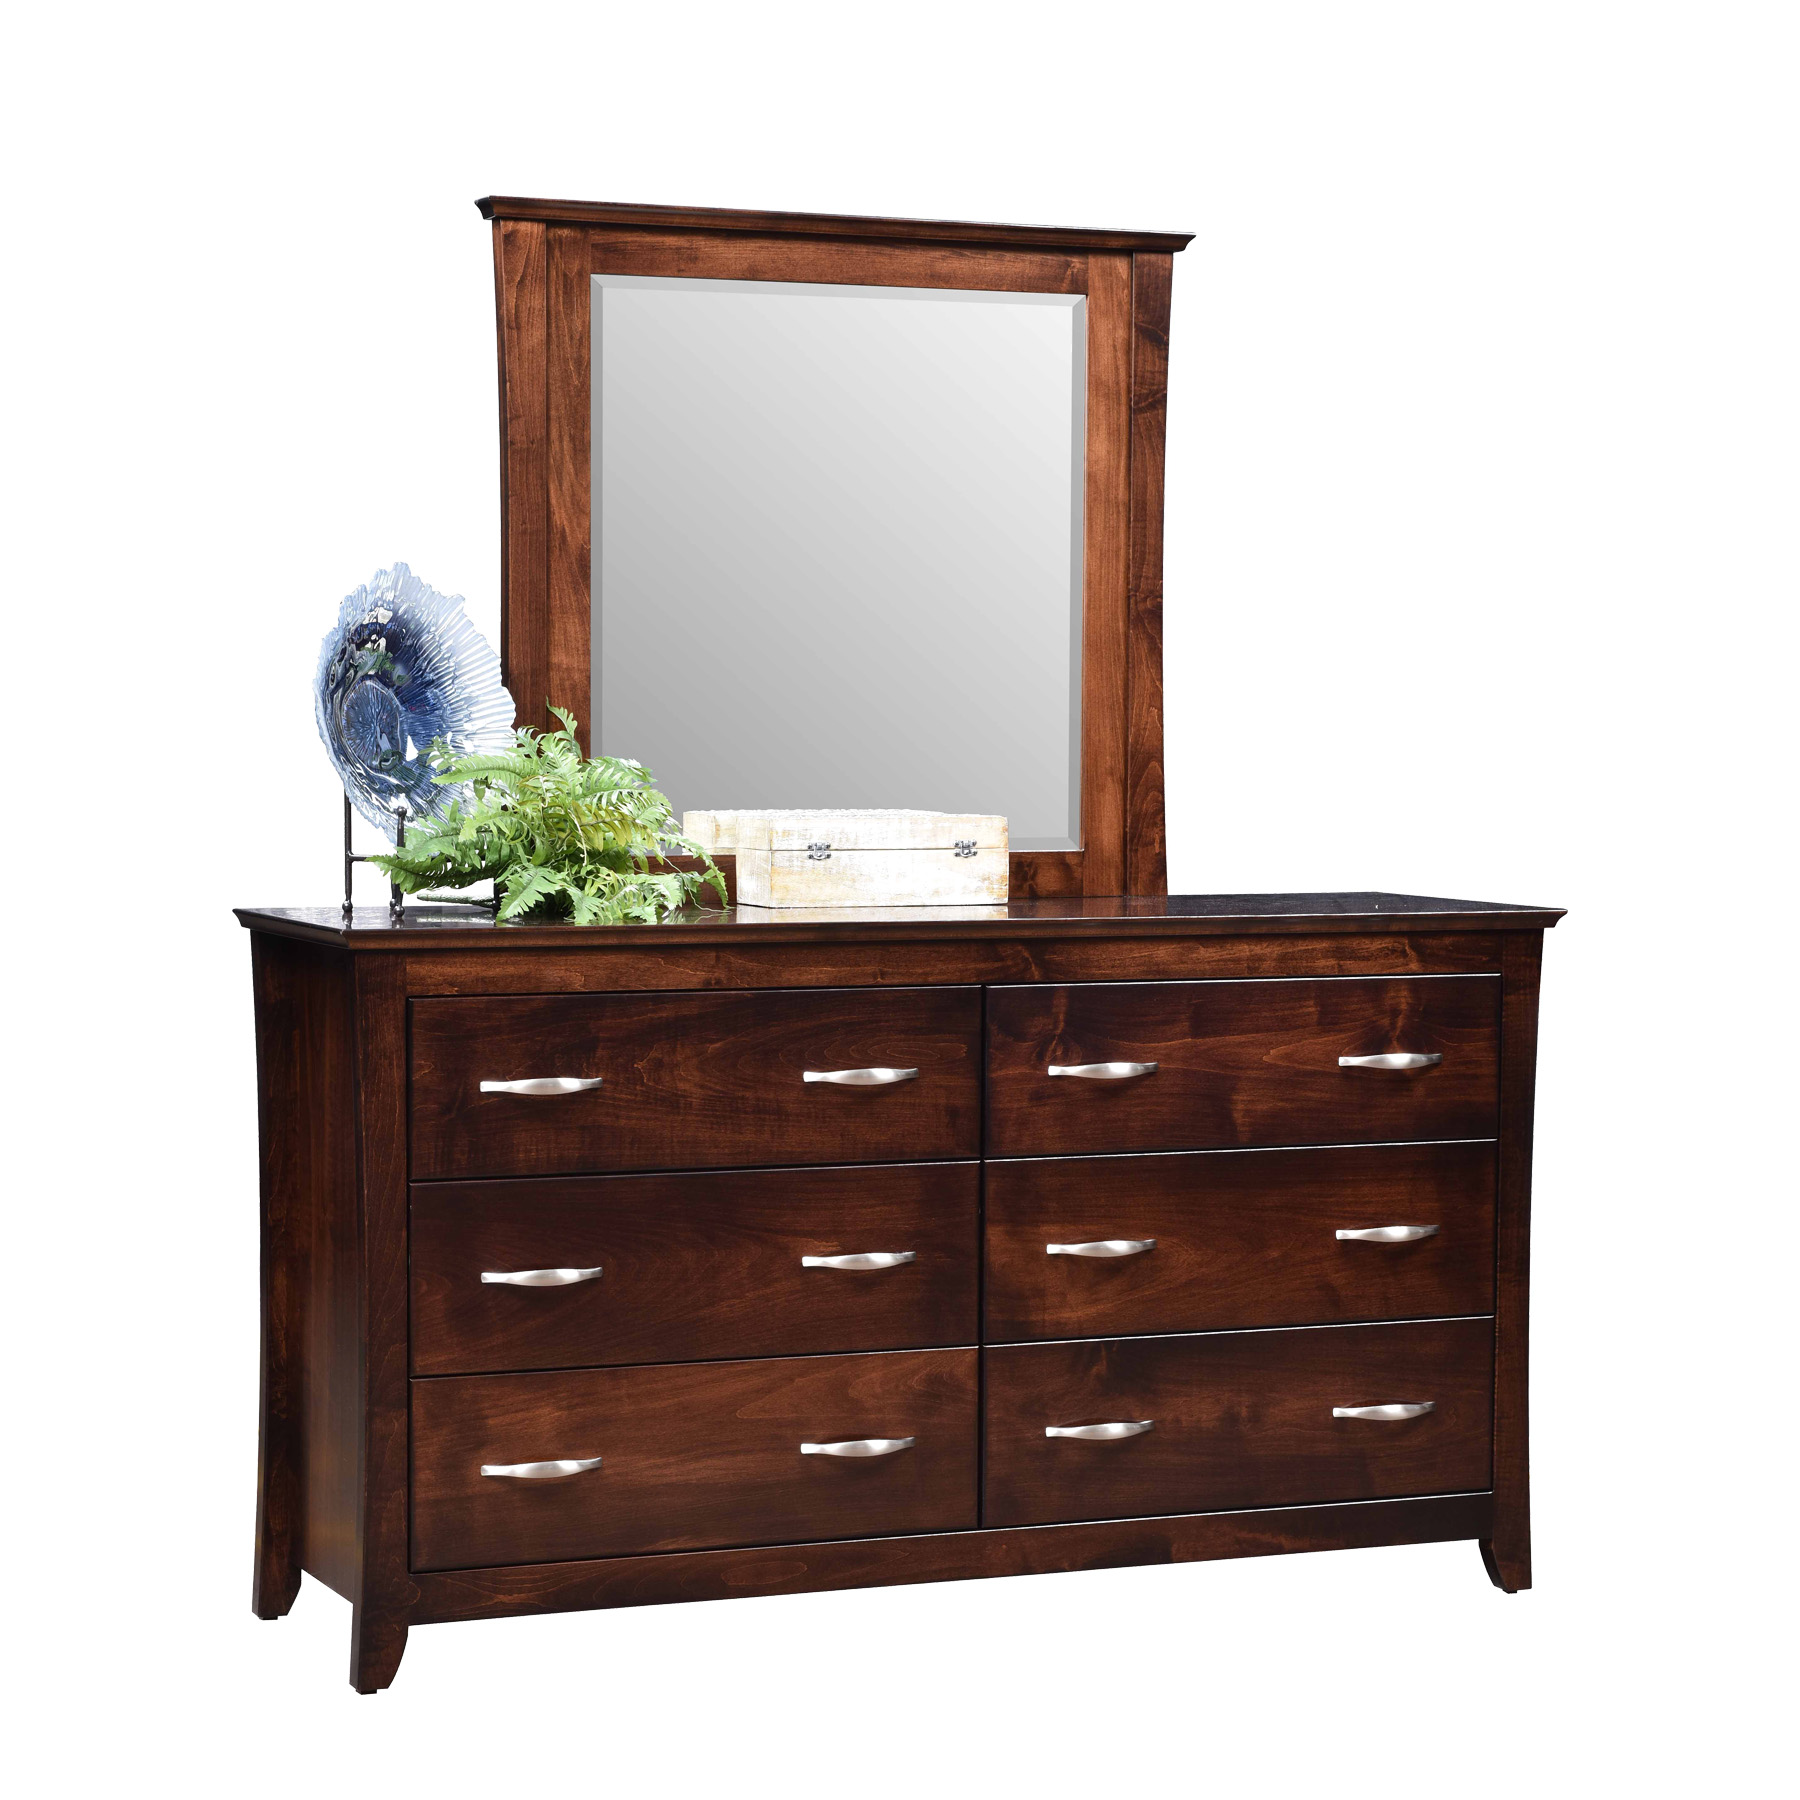 Willemington Double Dresser and Mirror